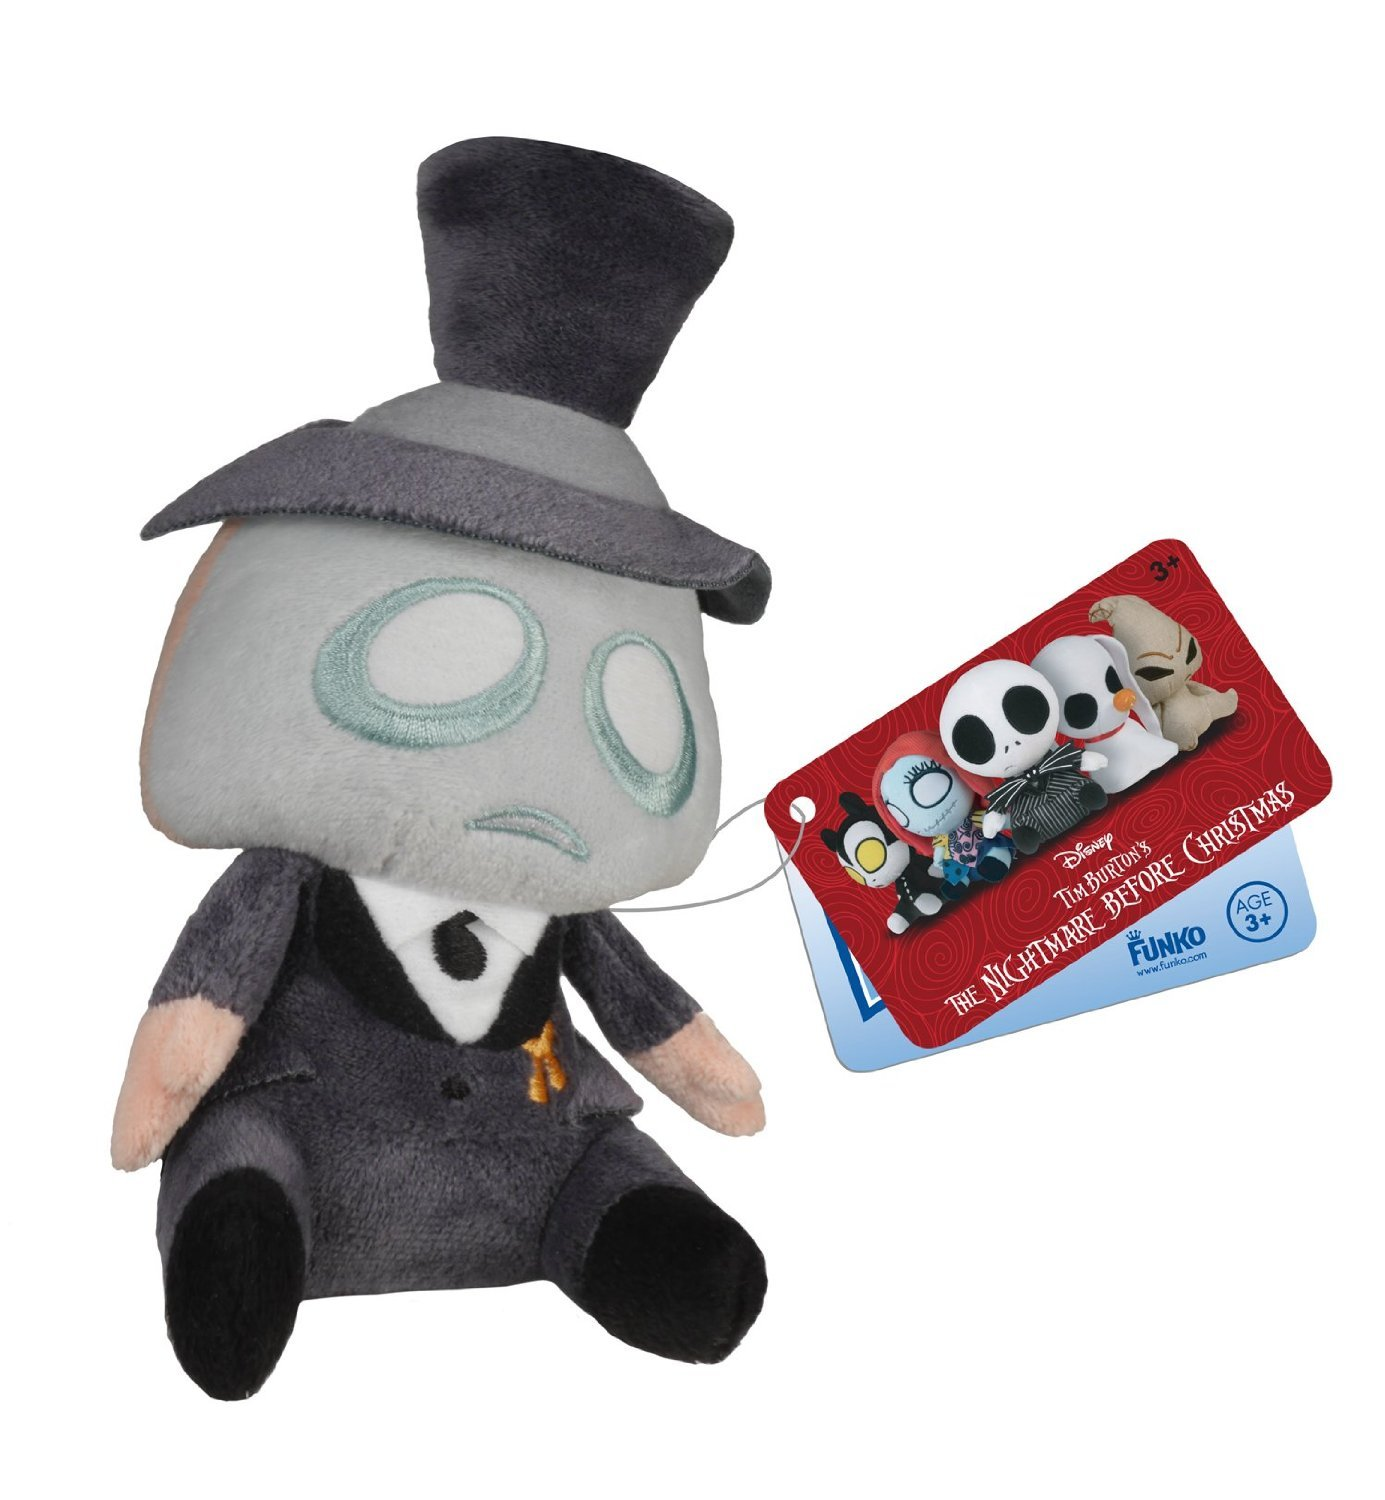 Amazon.com: Funko Mopeez: Nightmare Before Christmas Action Figure, Pumpkin King: Funko Mopeez:: Toys & Games